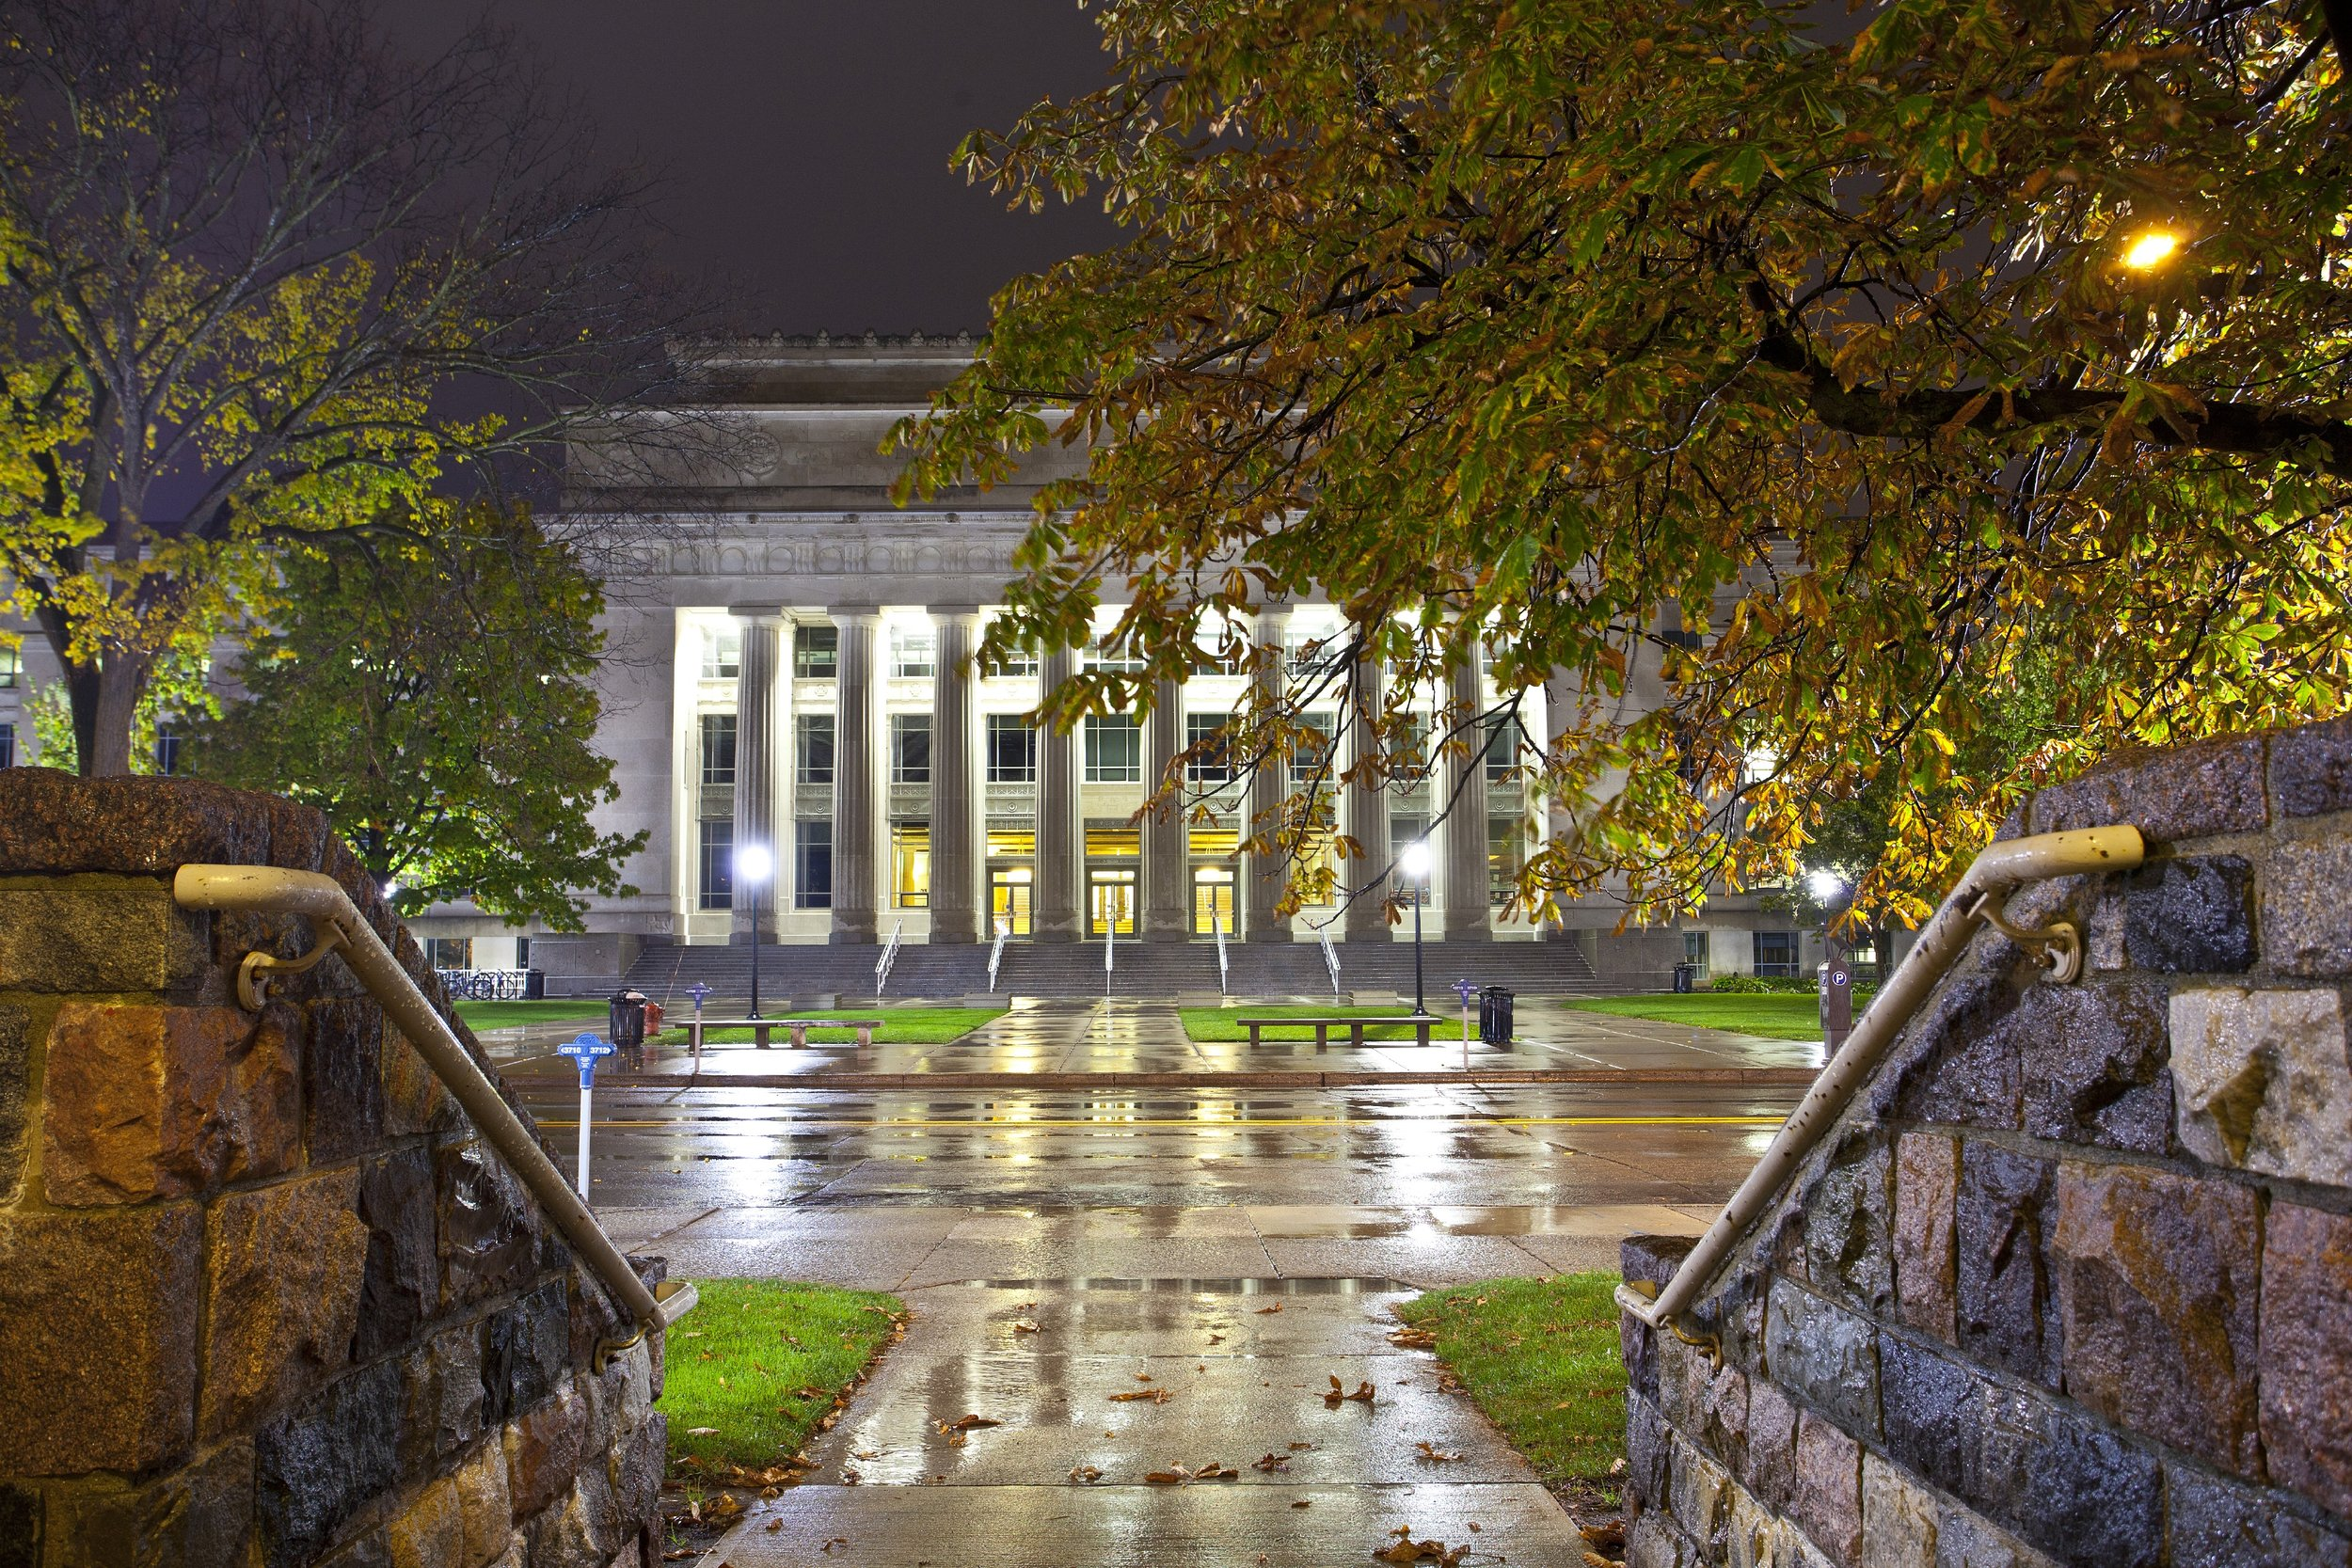 Copyright 2011, University of Michigan Photo Services